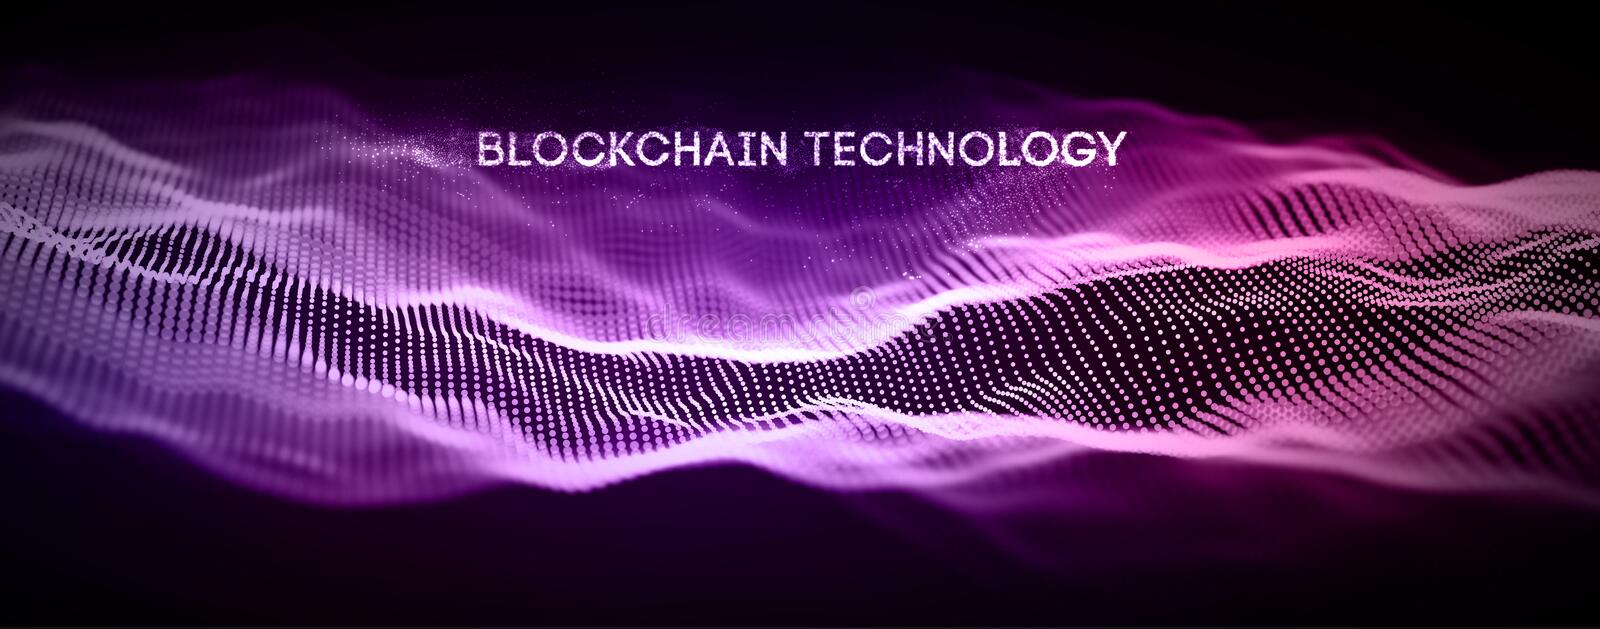 Blockchain technology background. Cryptocurrency fintech block chain network and programming concept. Abstract Segwit. vector illustration